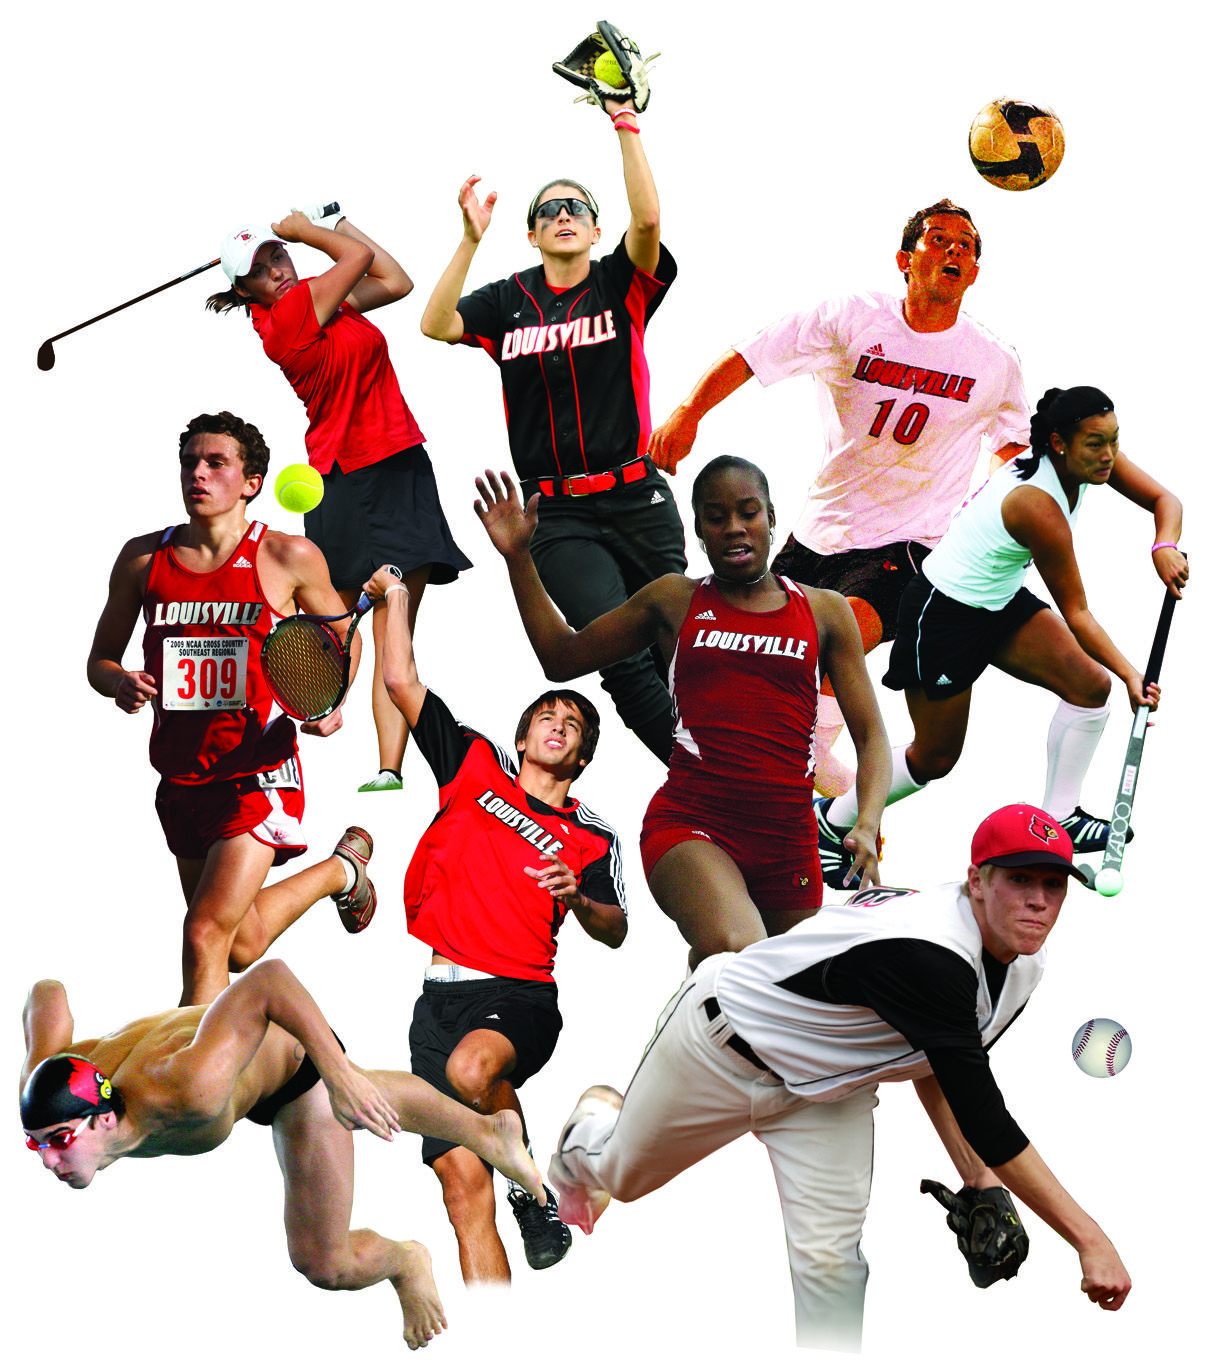 images of sports | UofL Sports Traditions | ALL KINDS OF ...